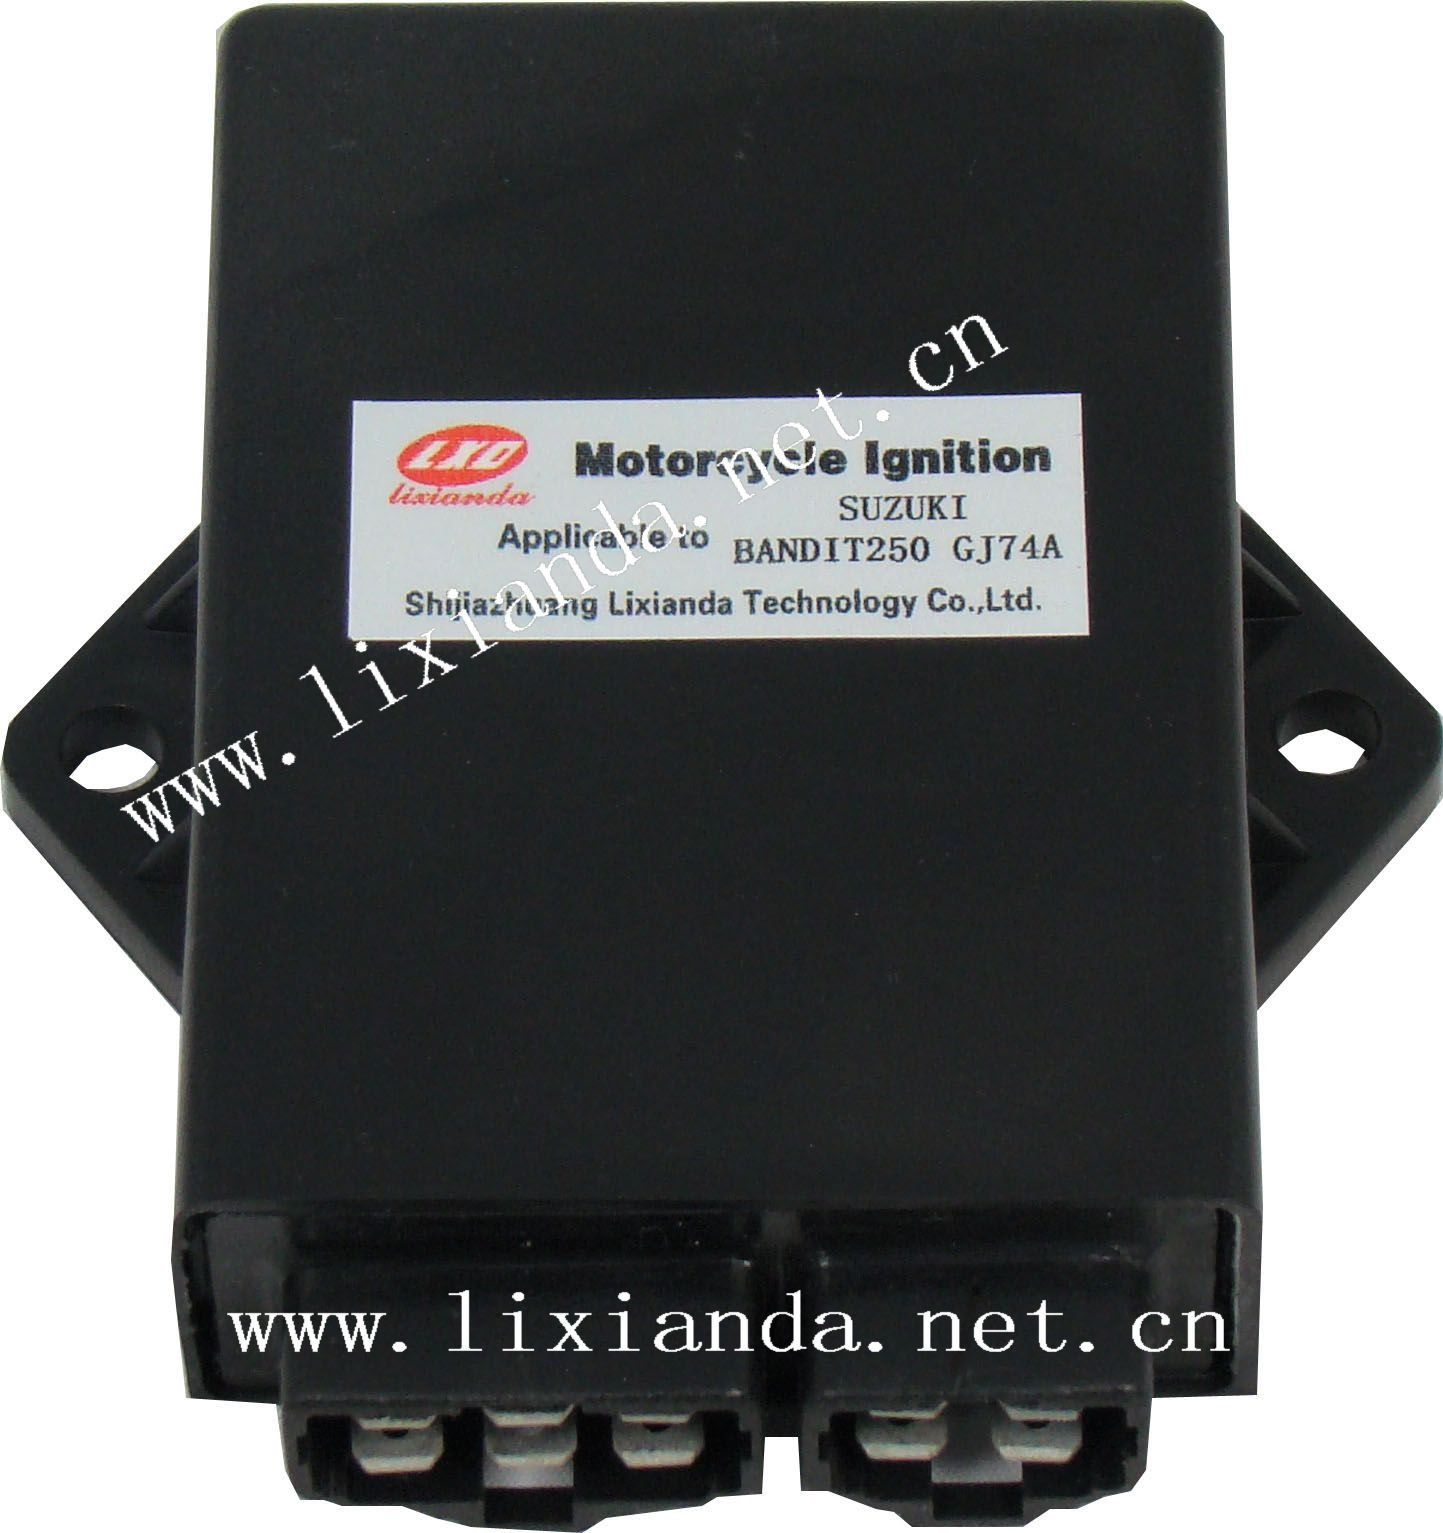 Digital electronic motorcycle parts CDI BANDIT250 GJ74A for SUZUKI motorcycle #LXD-GJ74A(China (Mainland))